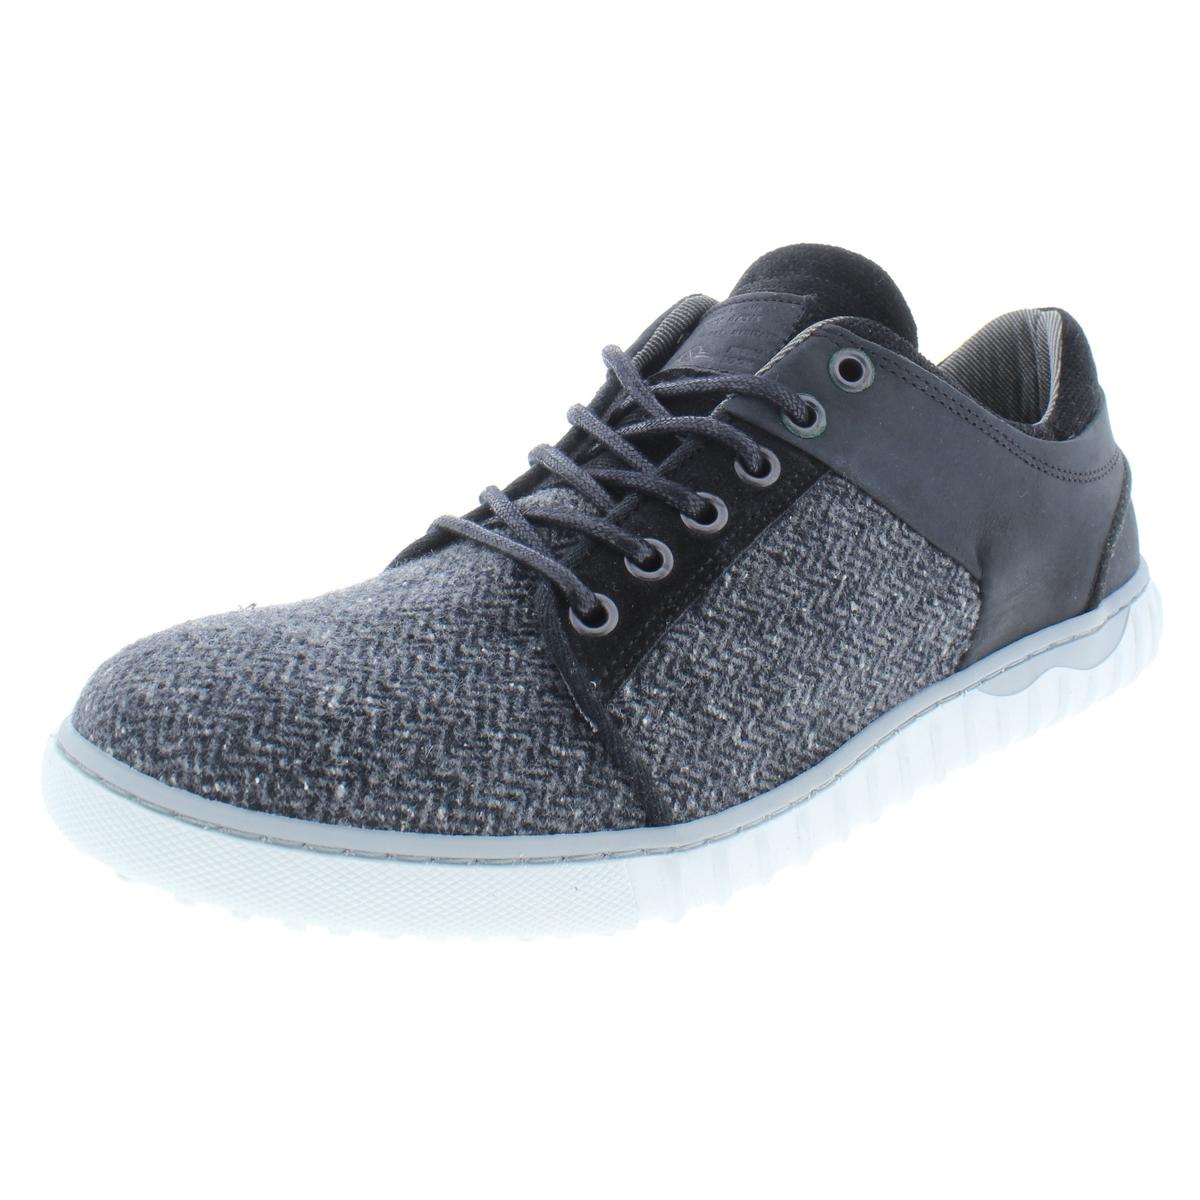 ee58064e947 Details about Steve Madden Mens Quill Black Fashion Sneakers Shoes 12  Medium (D) BHFO 3310